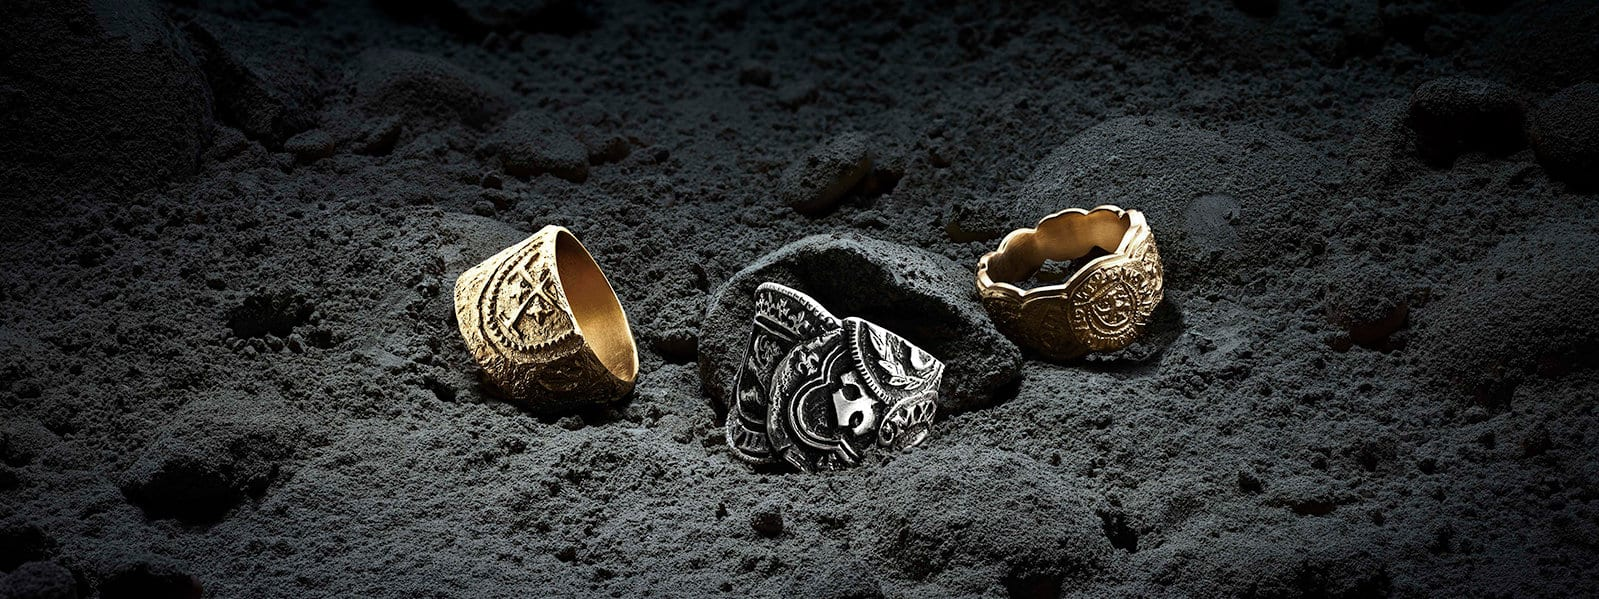 Shipwreck bands in 18K yellow gold or sterling silver on the seafloor.